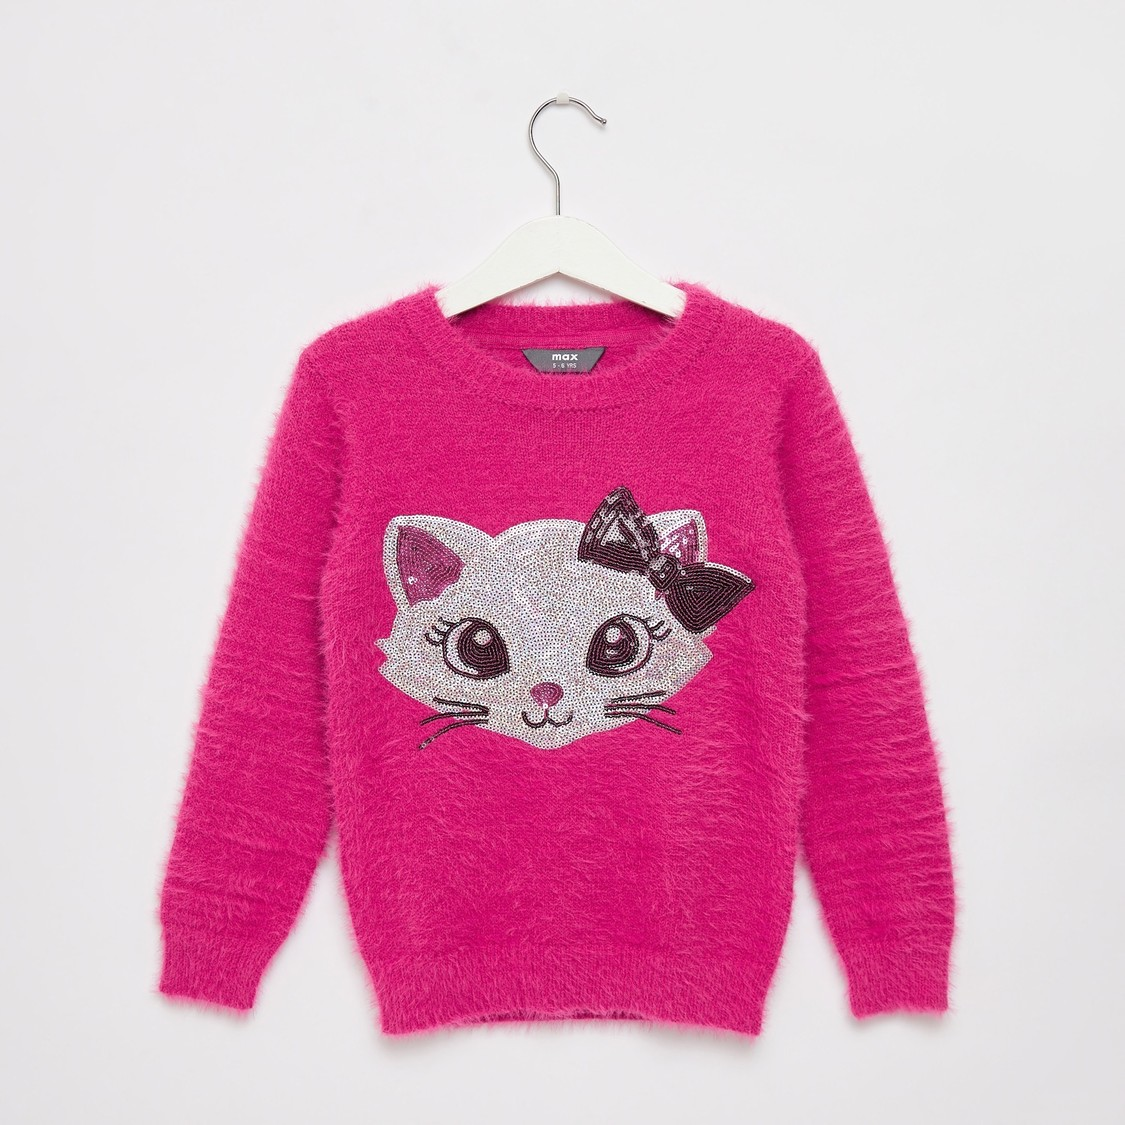 Sequin Detail Cat Sweater with Round Neck and Long Sleeves